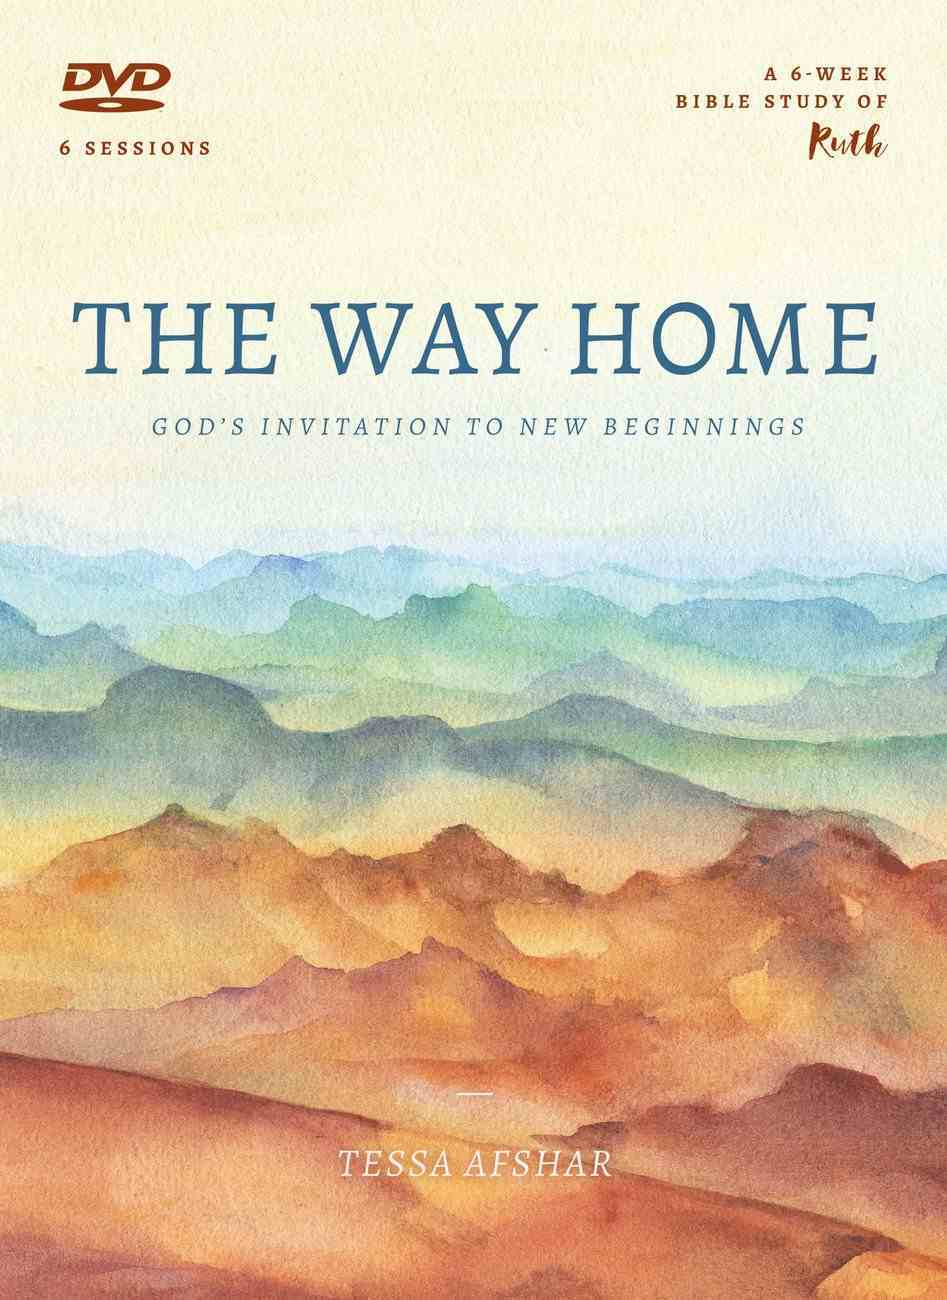 The Way Home: God's Invitation to New Beginnings (6 Sessions) (Dvd) DVD